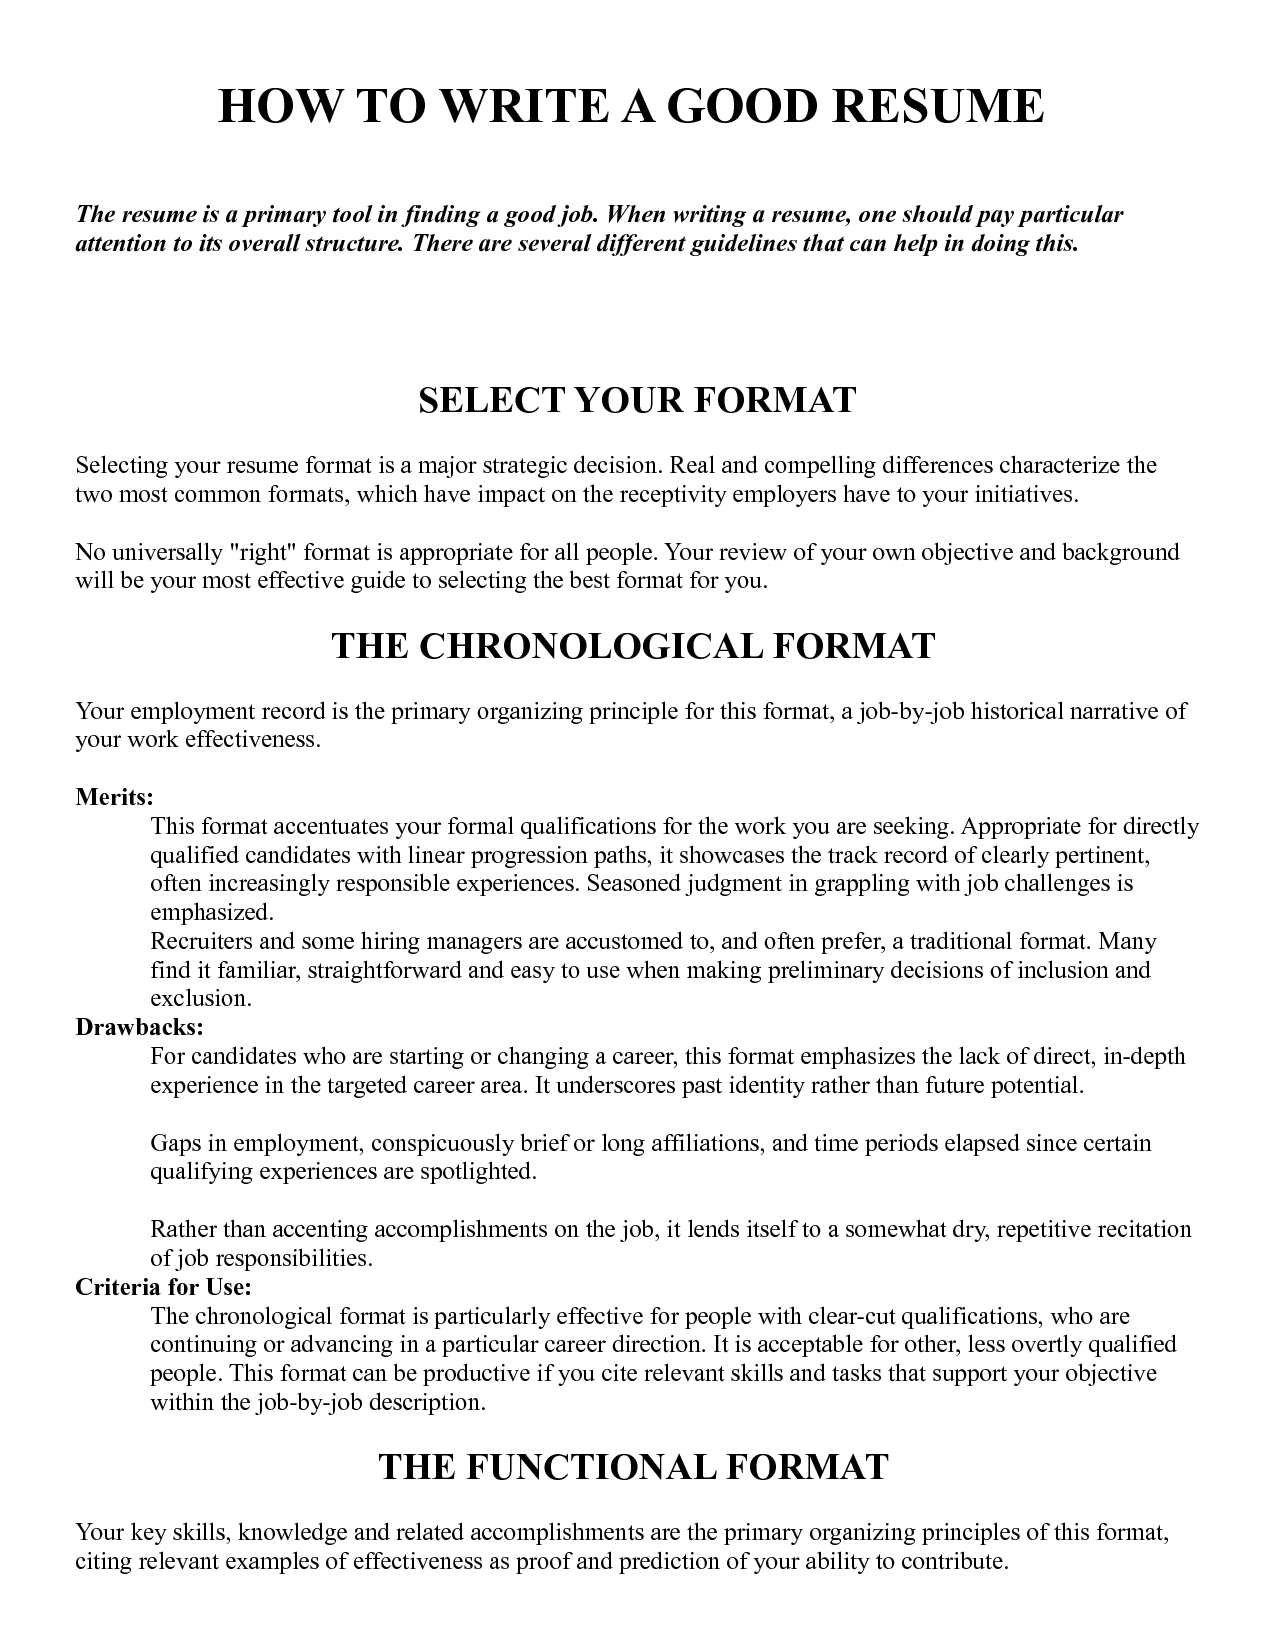 How to write a good resume (pays attention to its overall ...